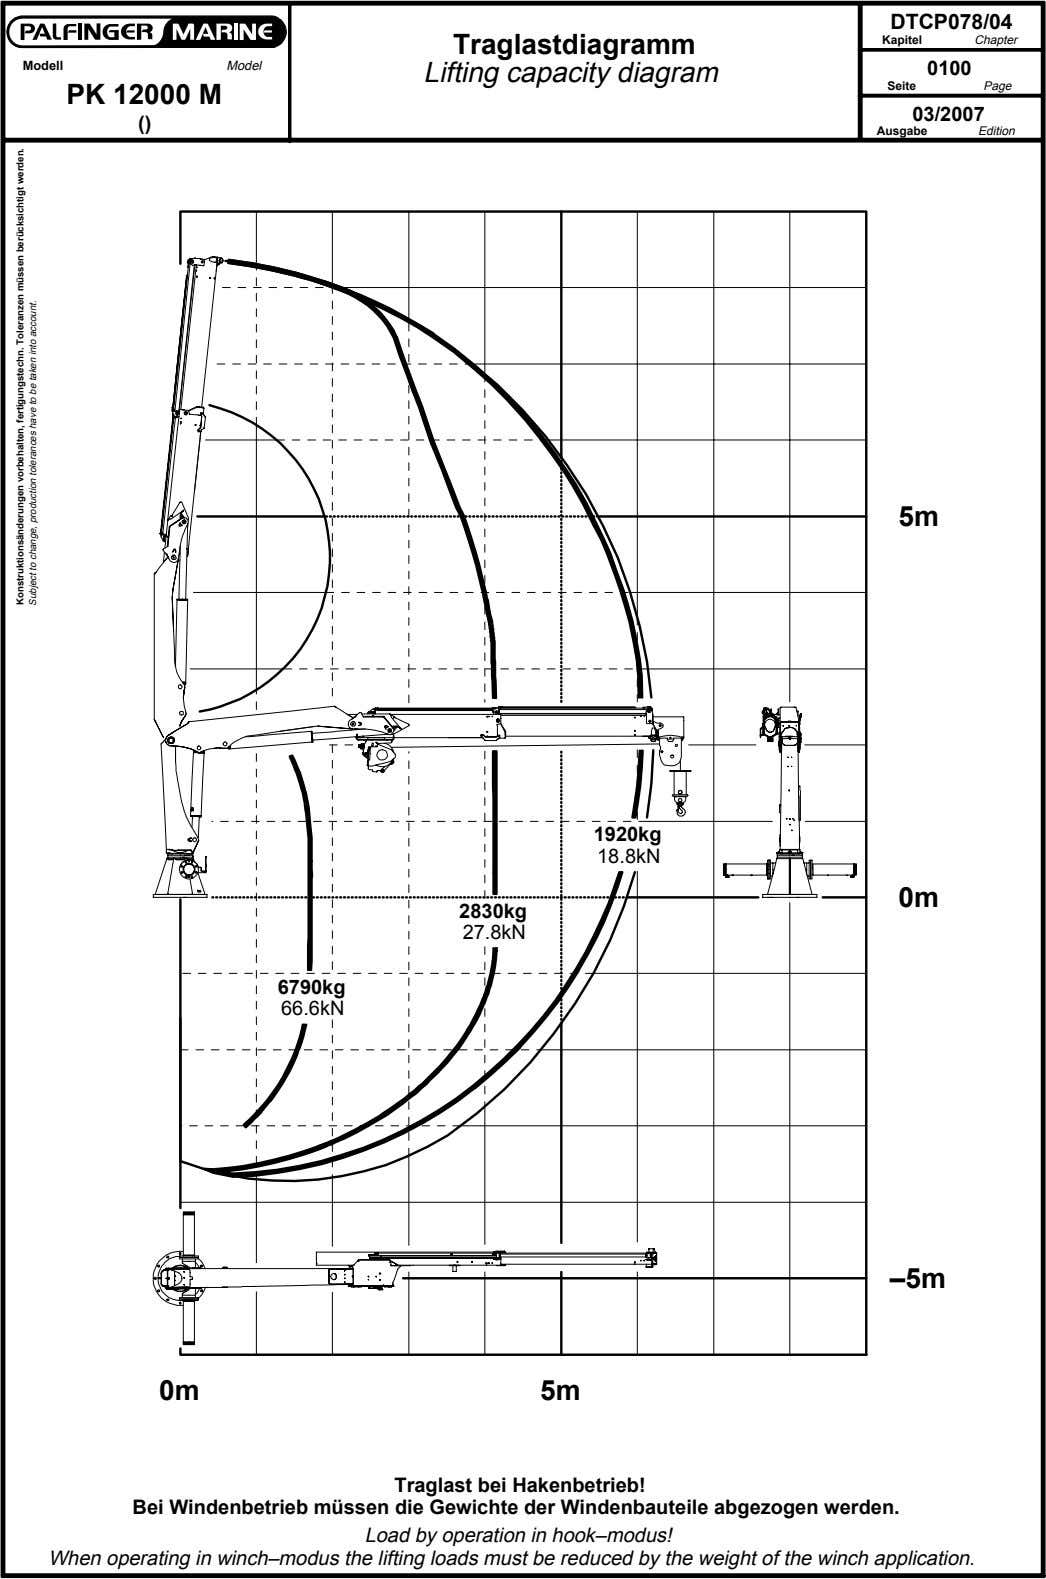 DTCP078/04 Traglastdiagramm Kapitel Chapter Modell Model Lifting capacity diagram 0100 Seite Page PK 12000 M